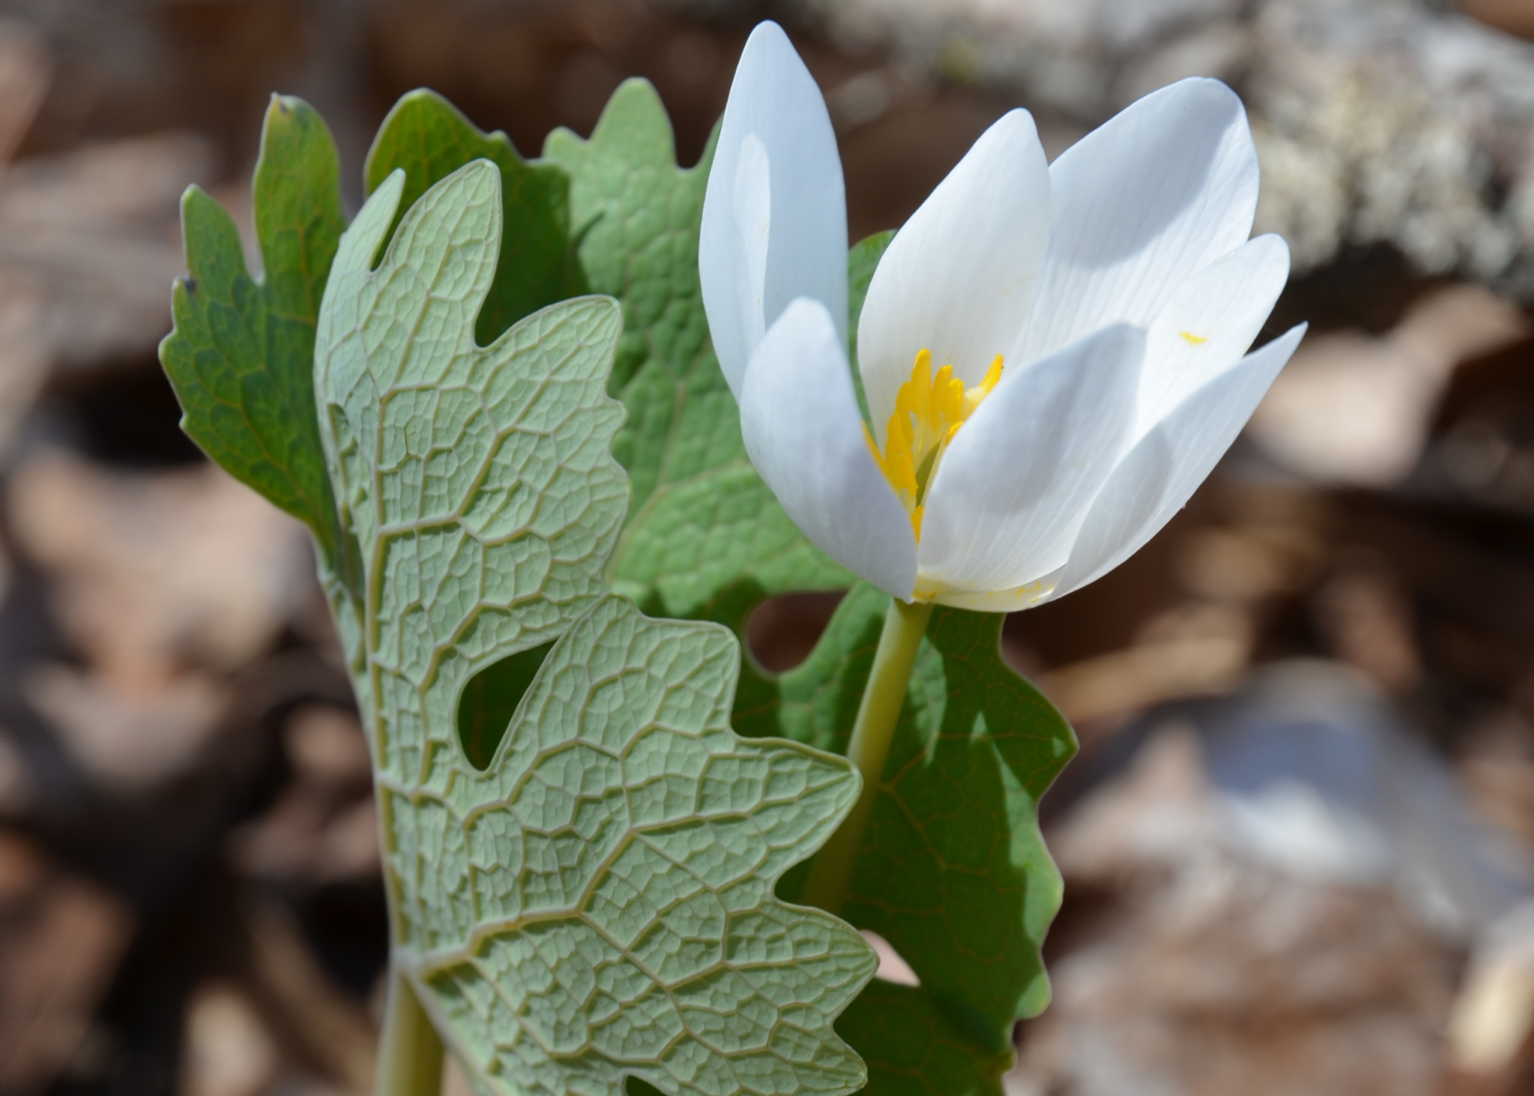 Single half-closed white flower, and large, lobed leaf.